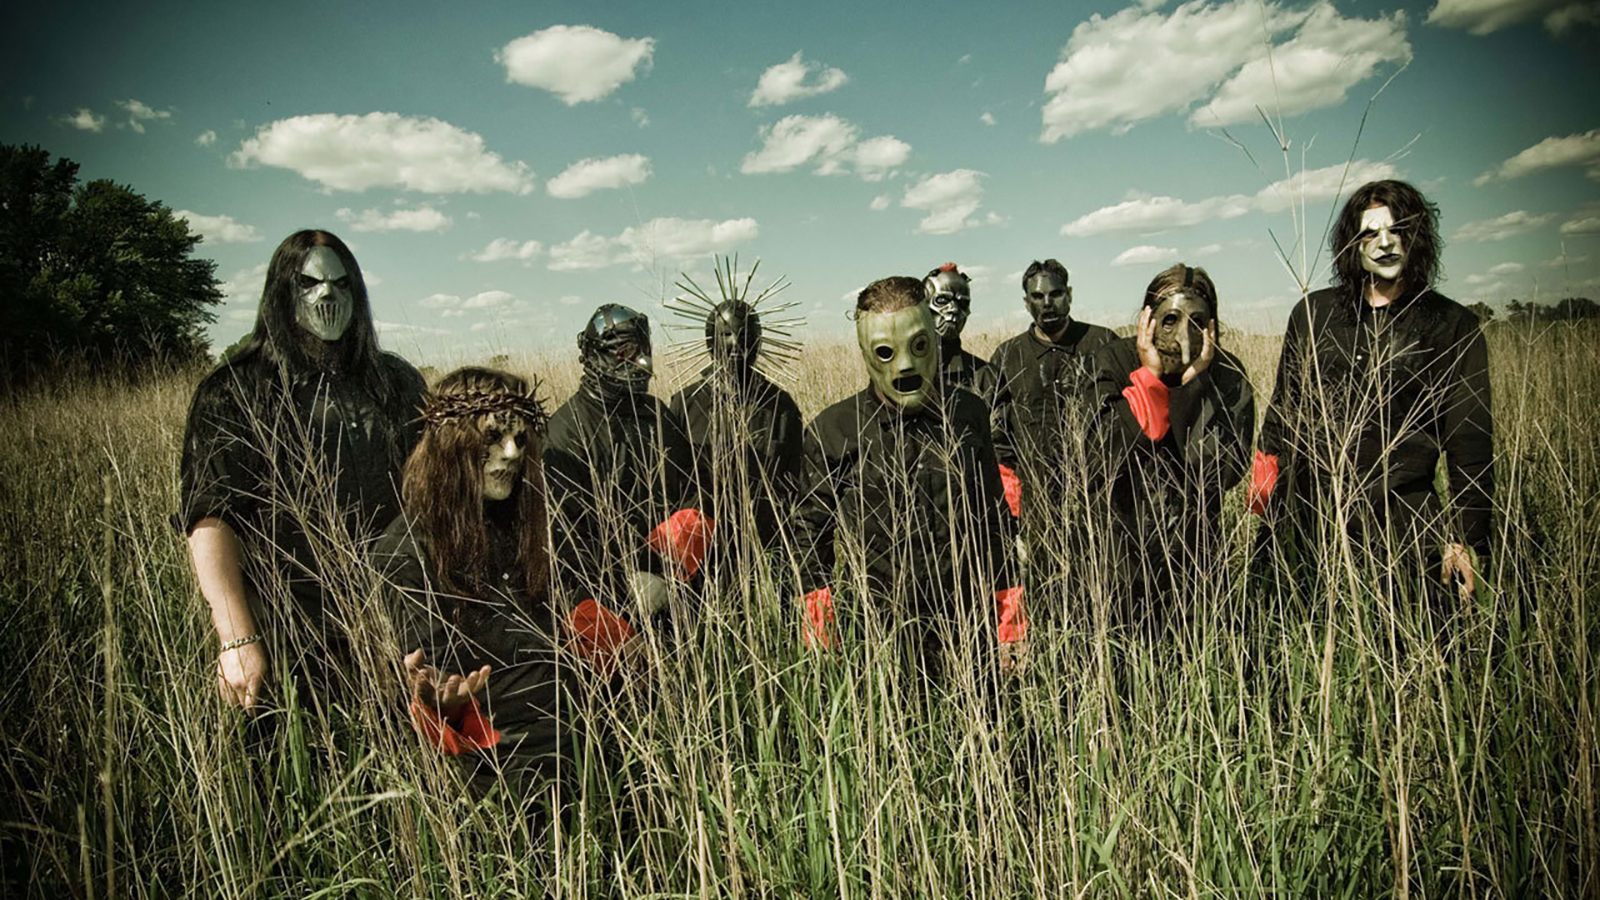 Tour Laundry Specialist: Slipknot's Stage Clothes Filthiest He's Ever Cleaned